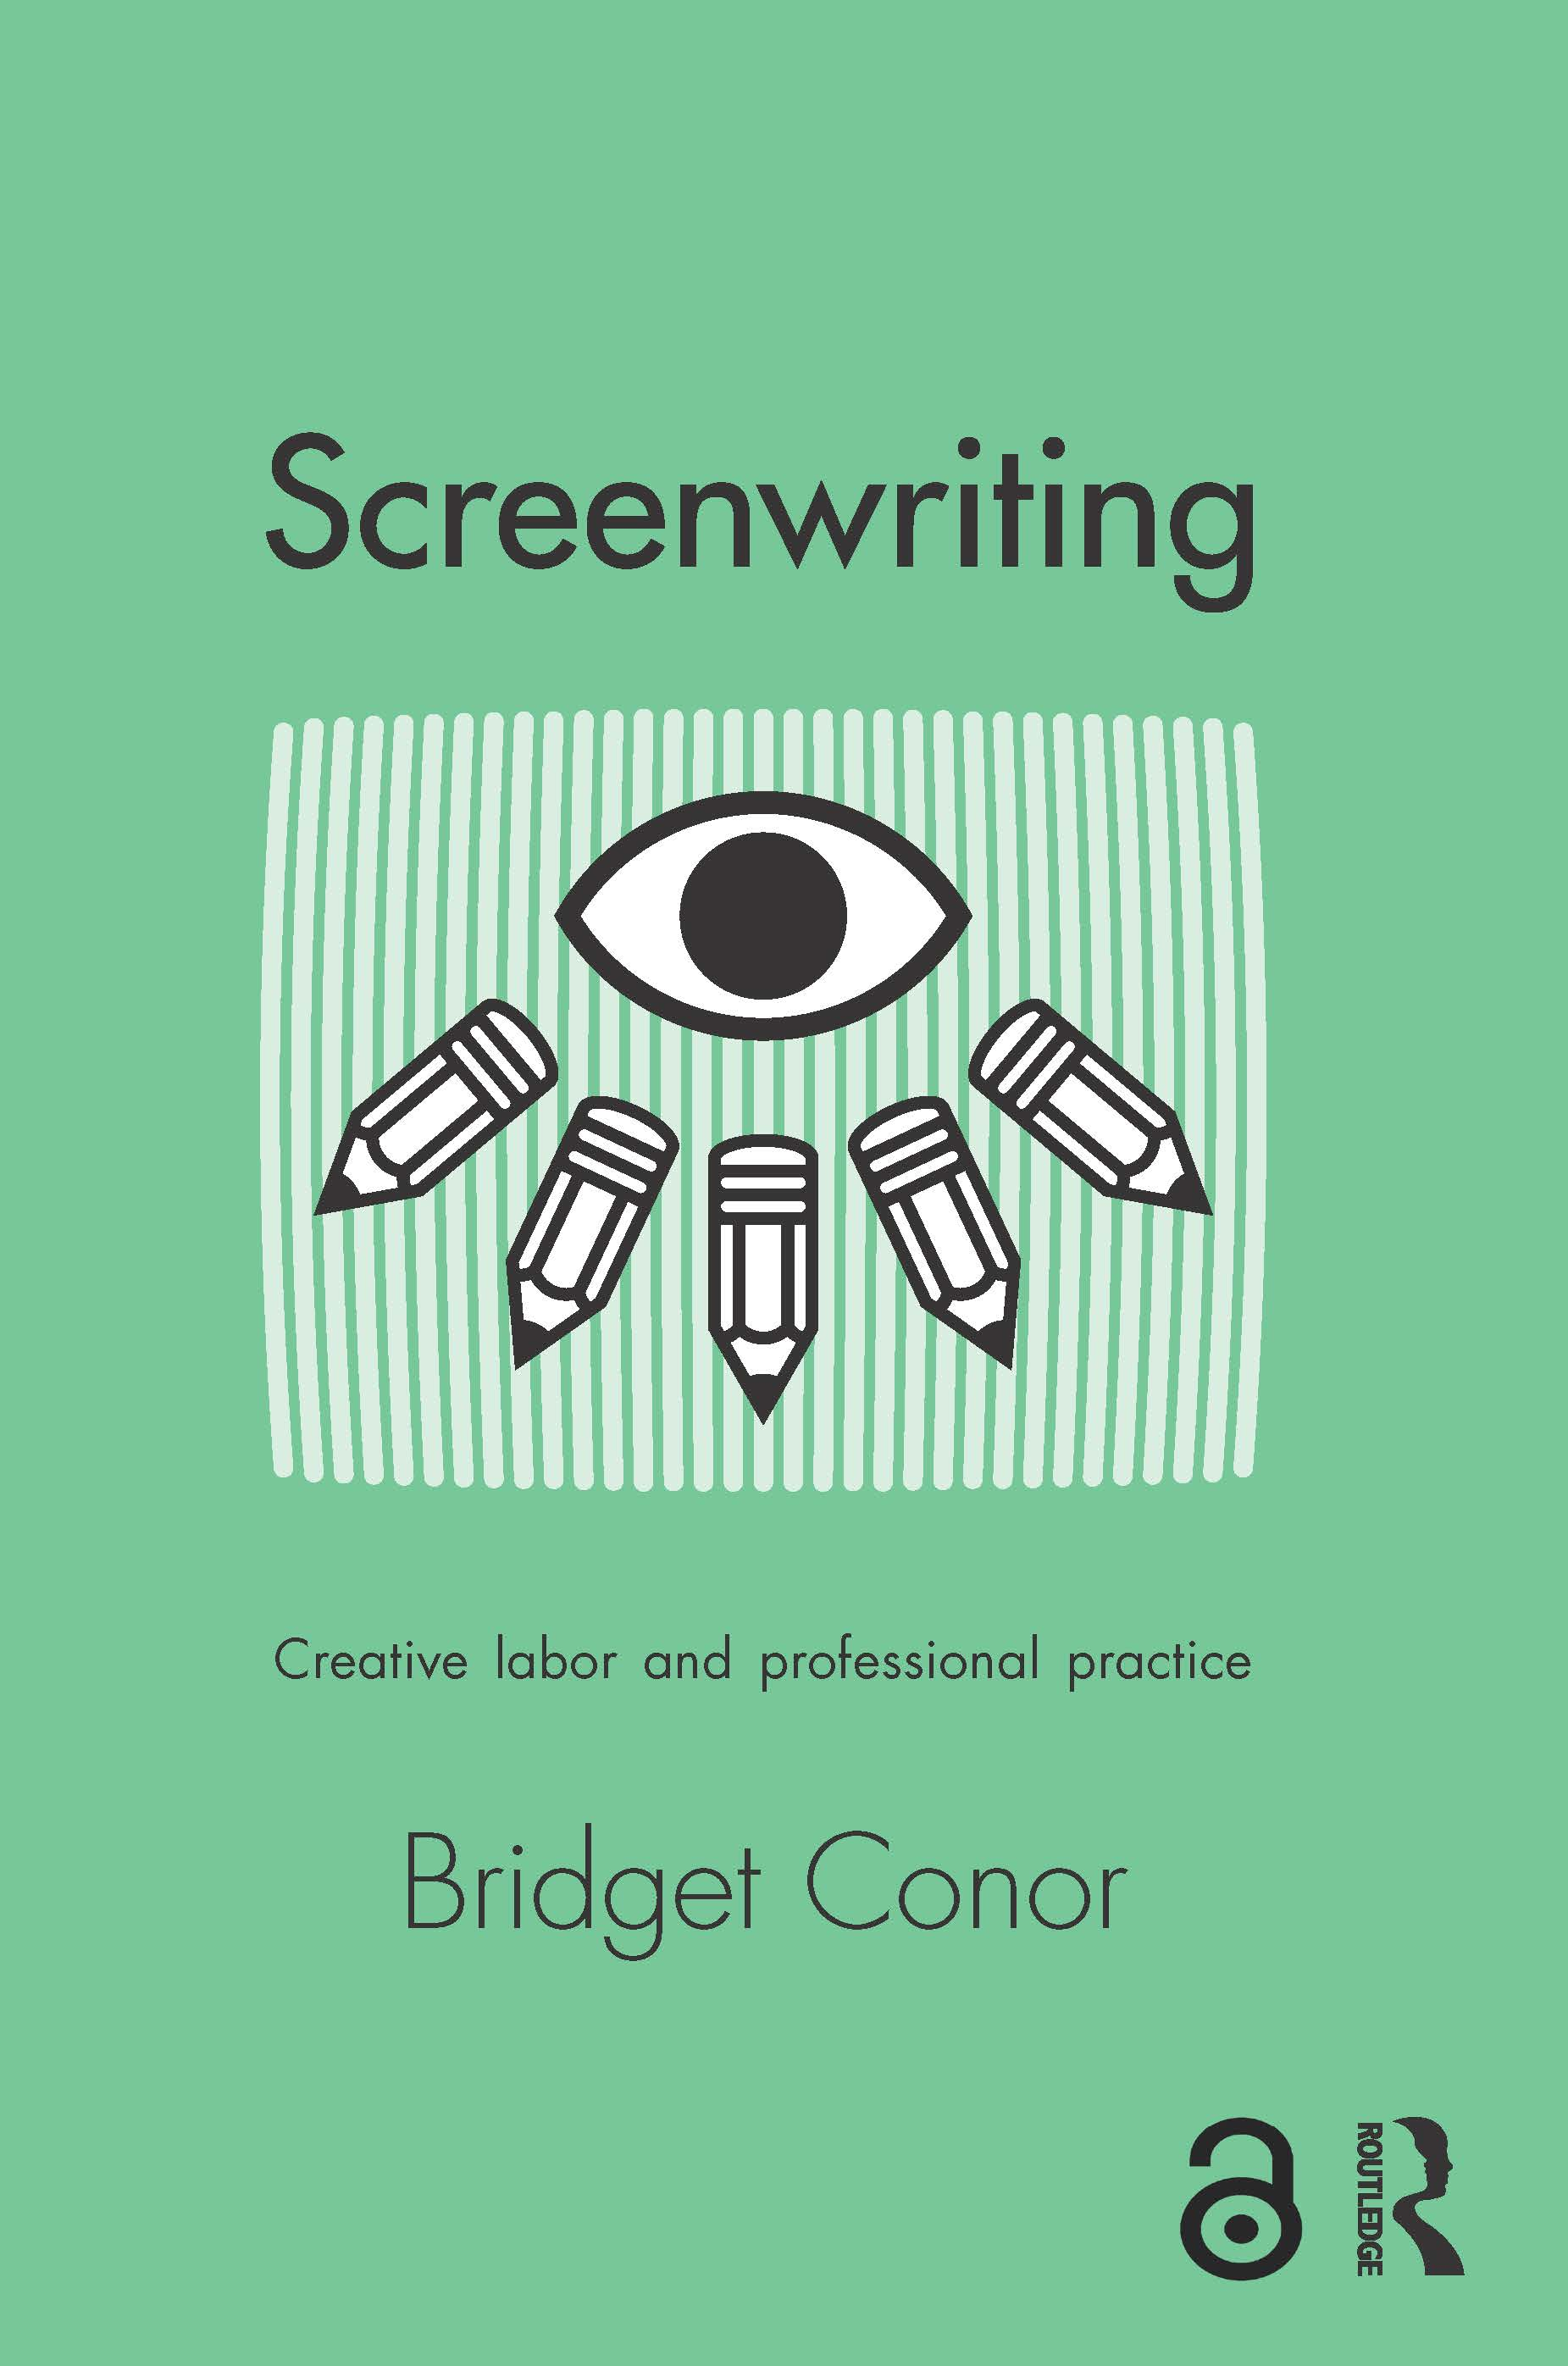 Screenwriting: Creative Labor and Professional Practice book cover